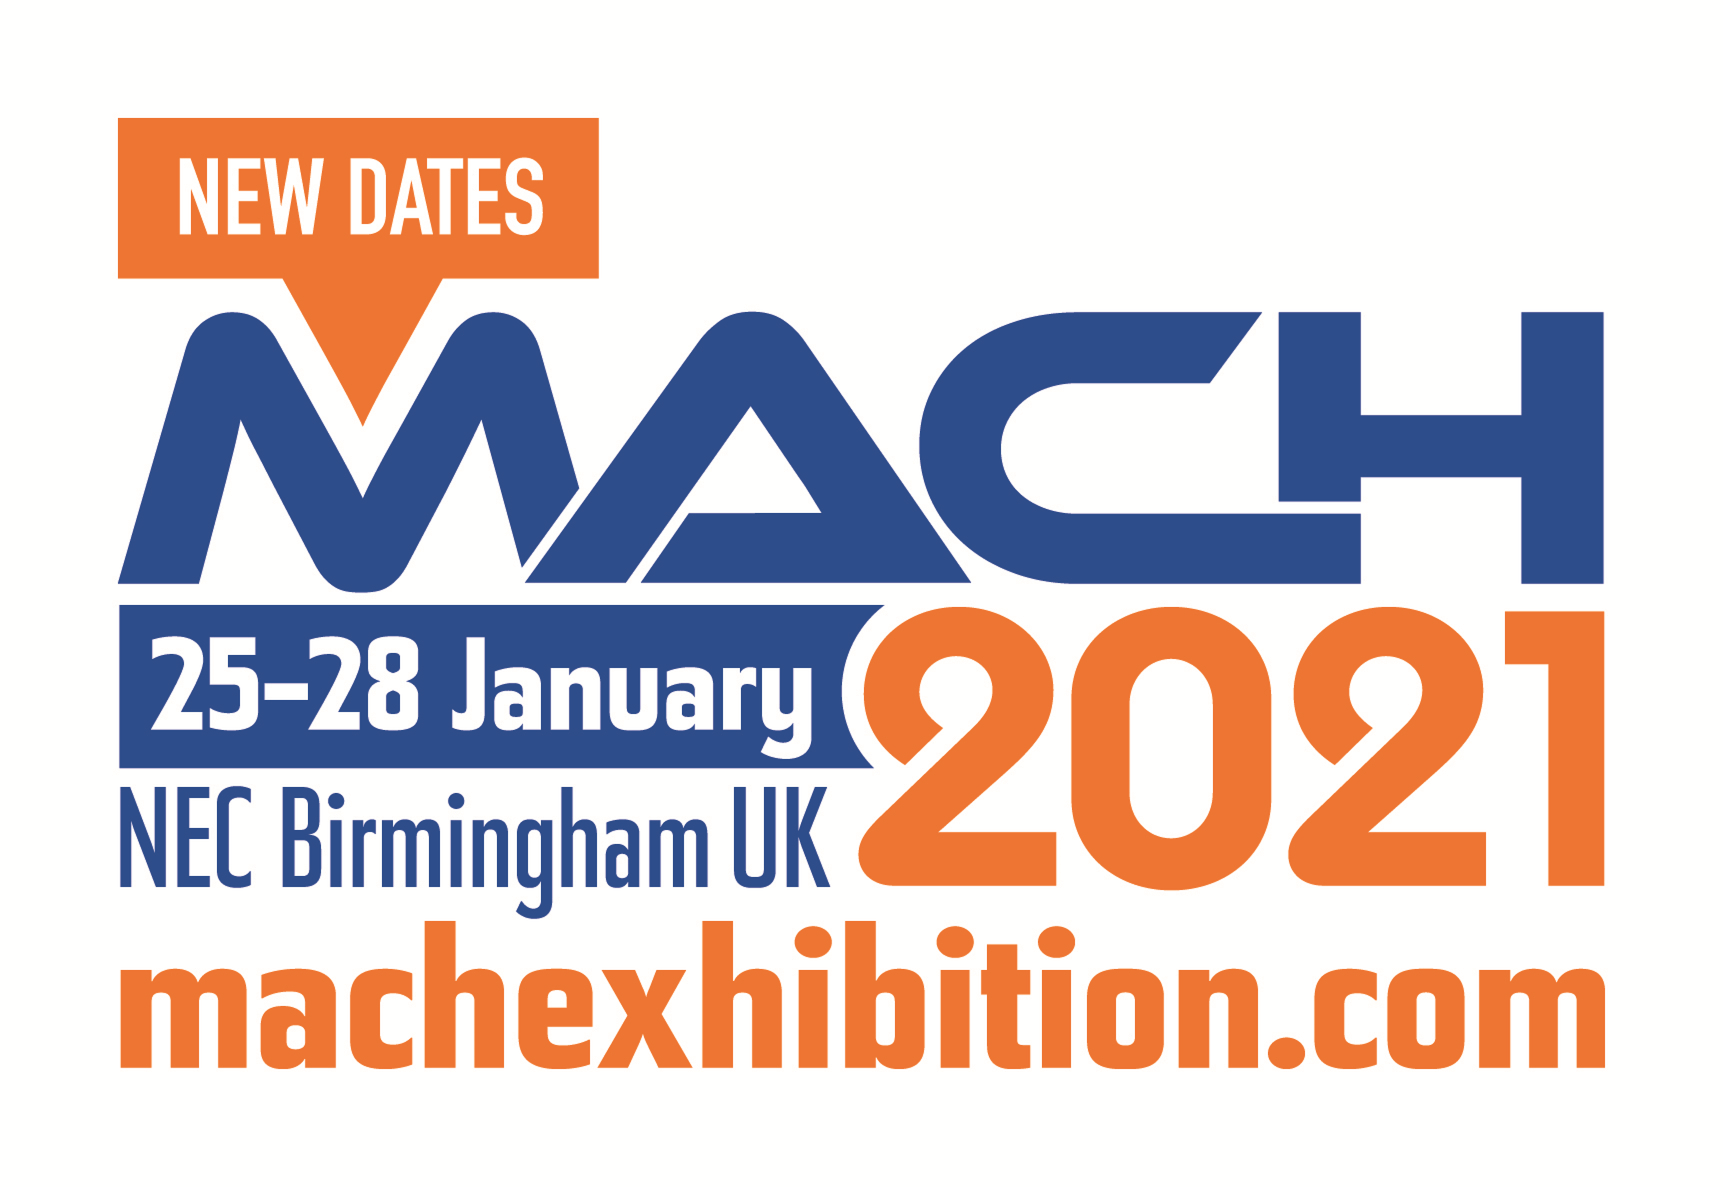 MACH in Birmingham (UK)